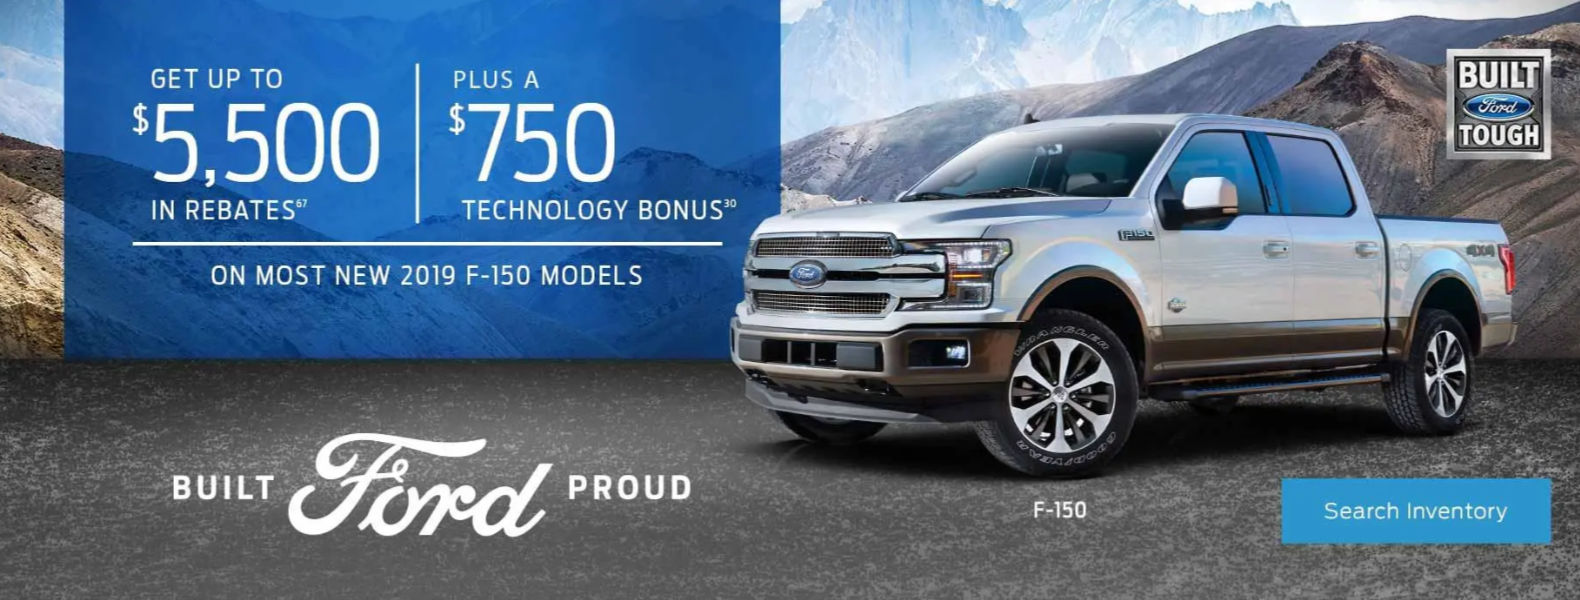 Ford F-150 special